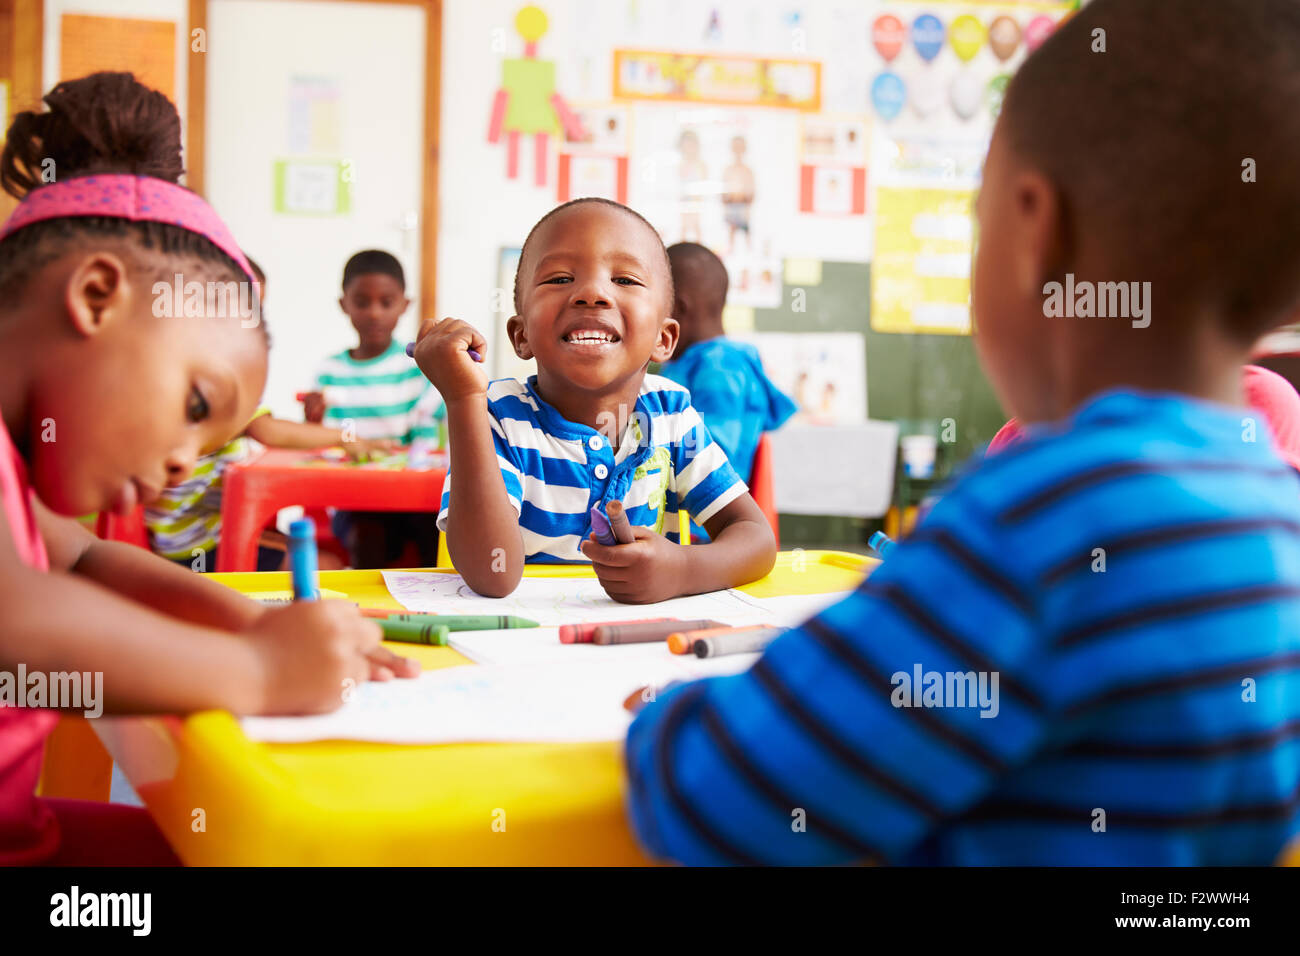 Preschool class in South Africa, boy looking to camera - Stock Image